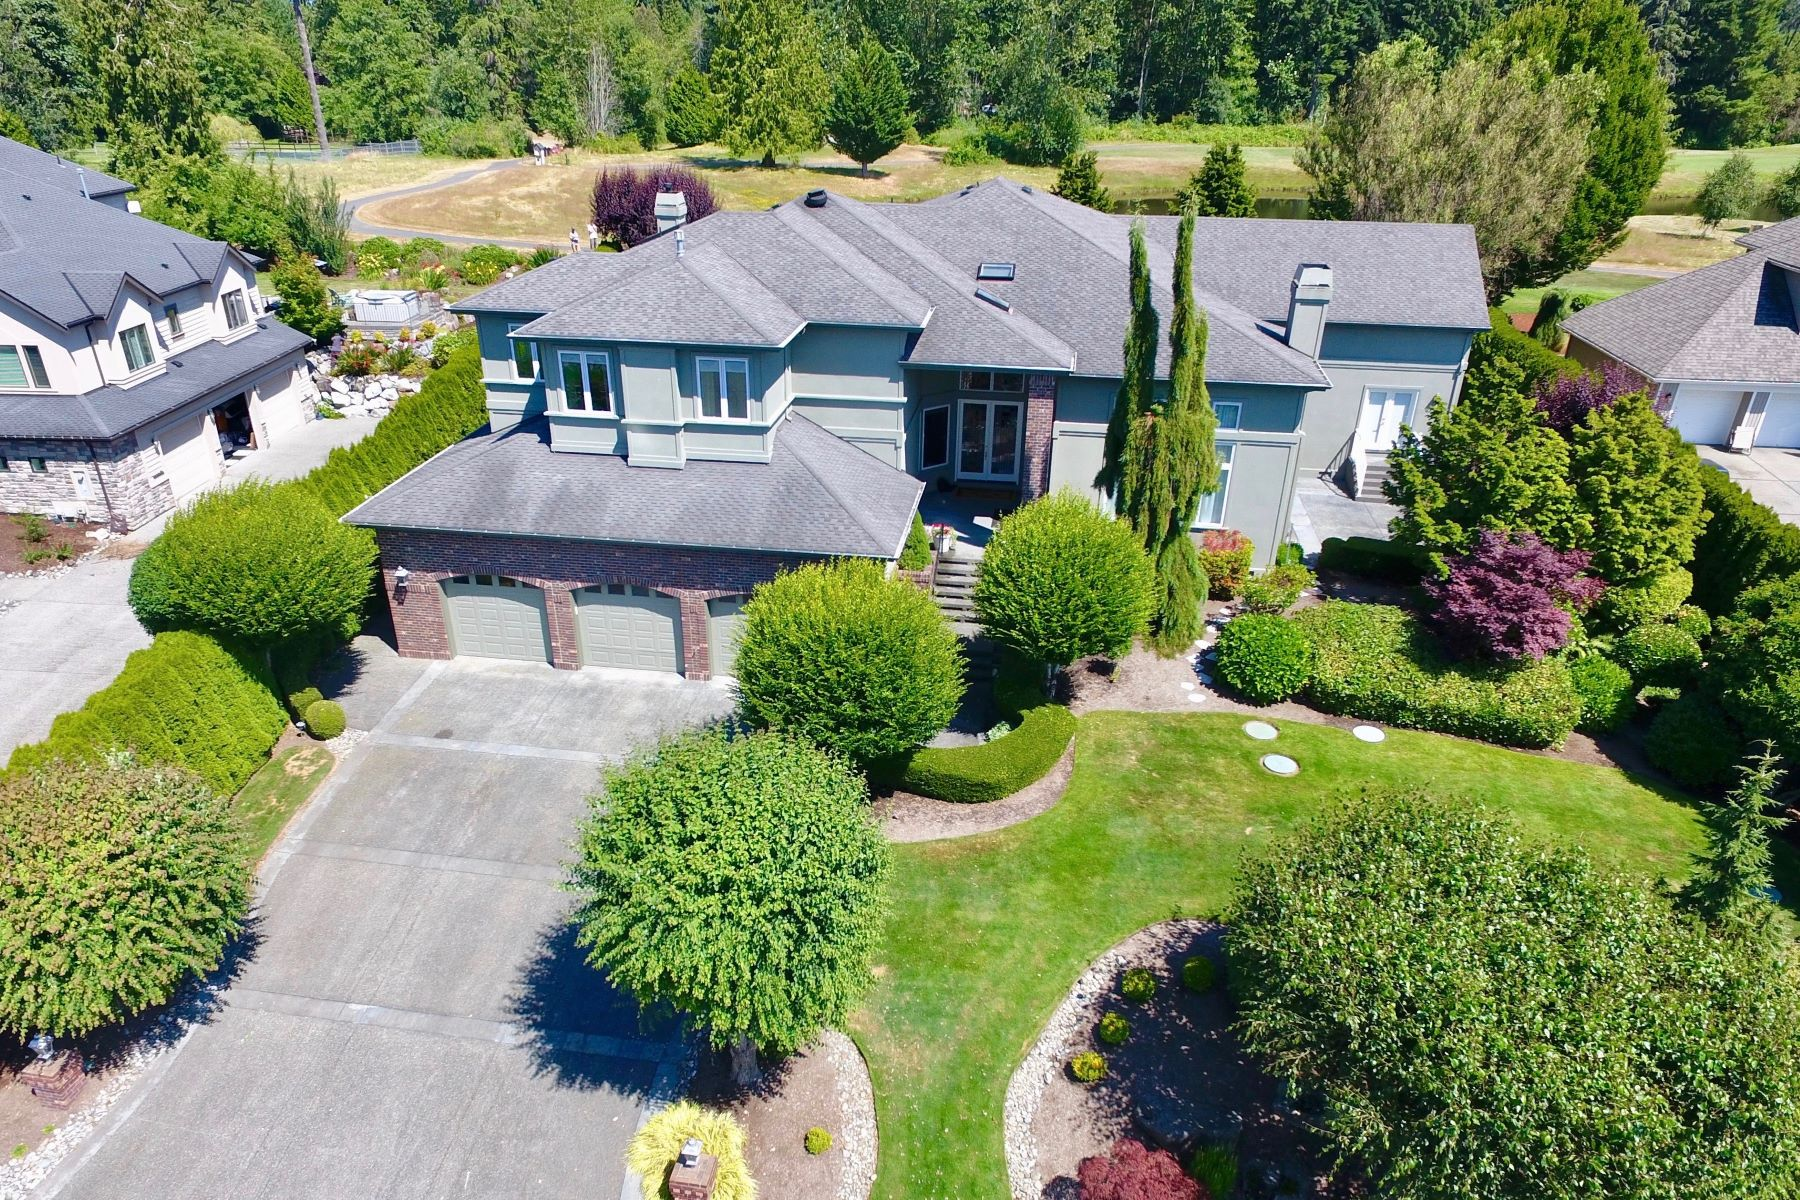 Single Family Home for Sale at Golf Course Estate Living 20707 127th Ave SE Snohomish, Washington 98296 United States